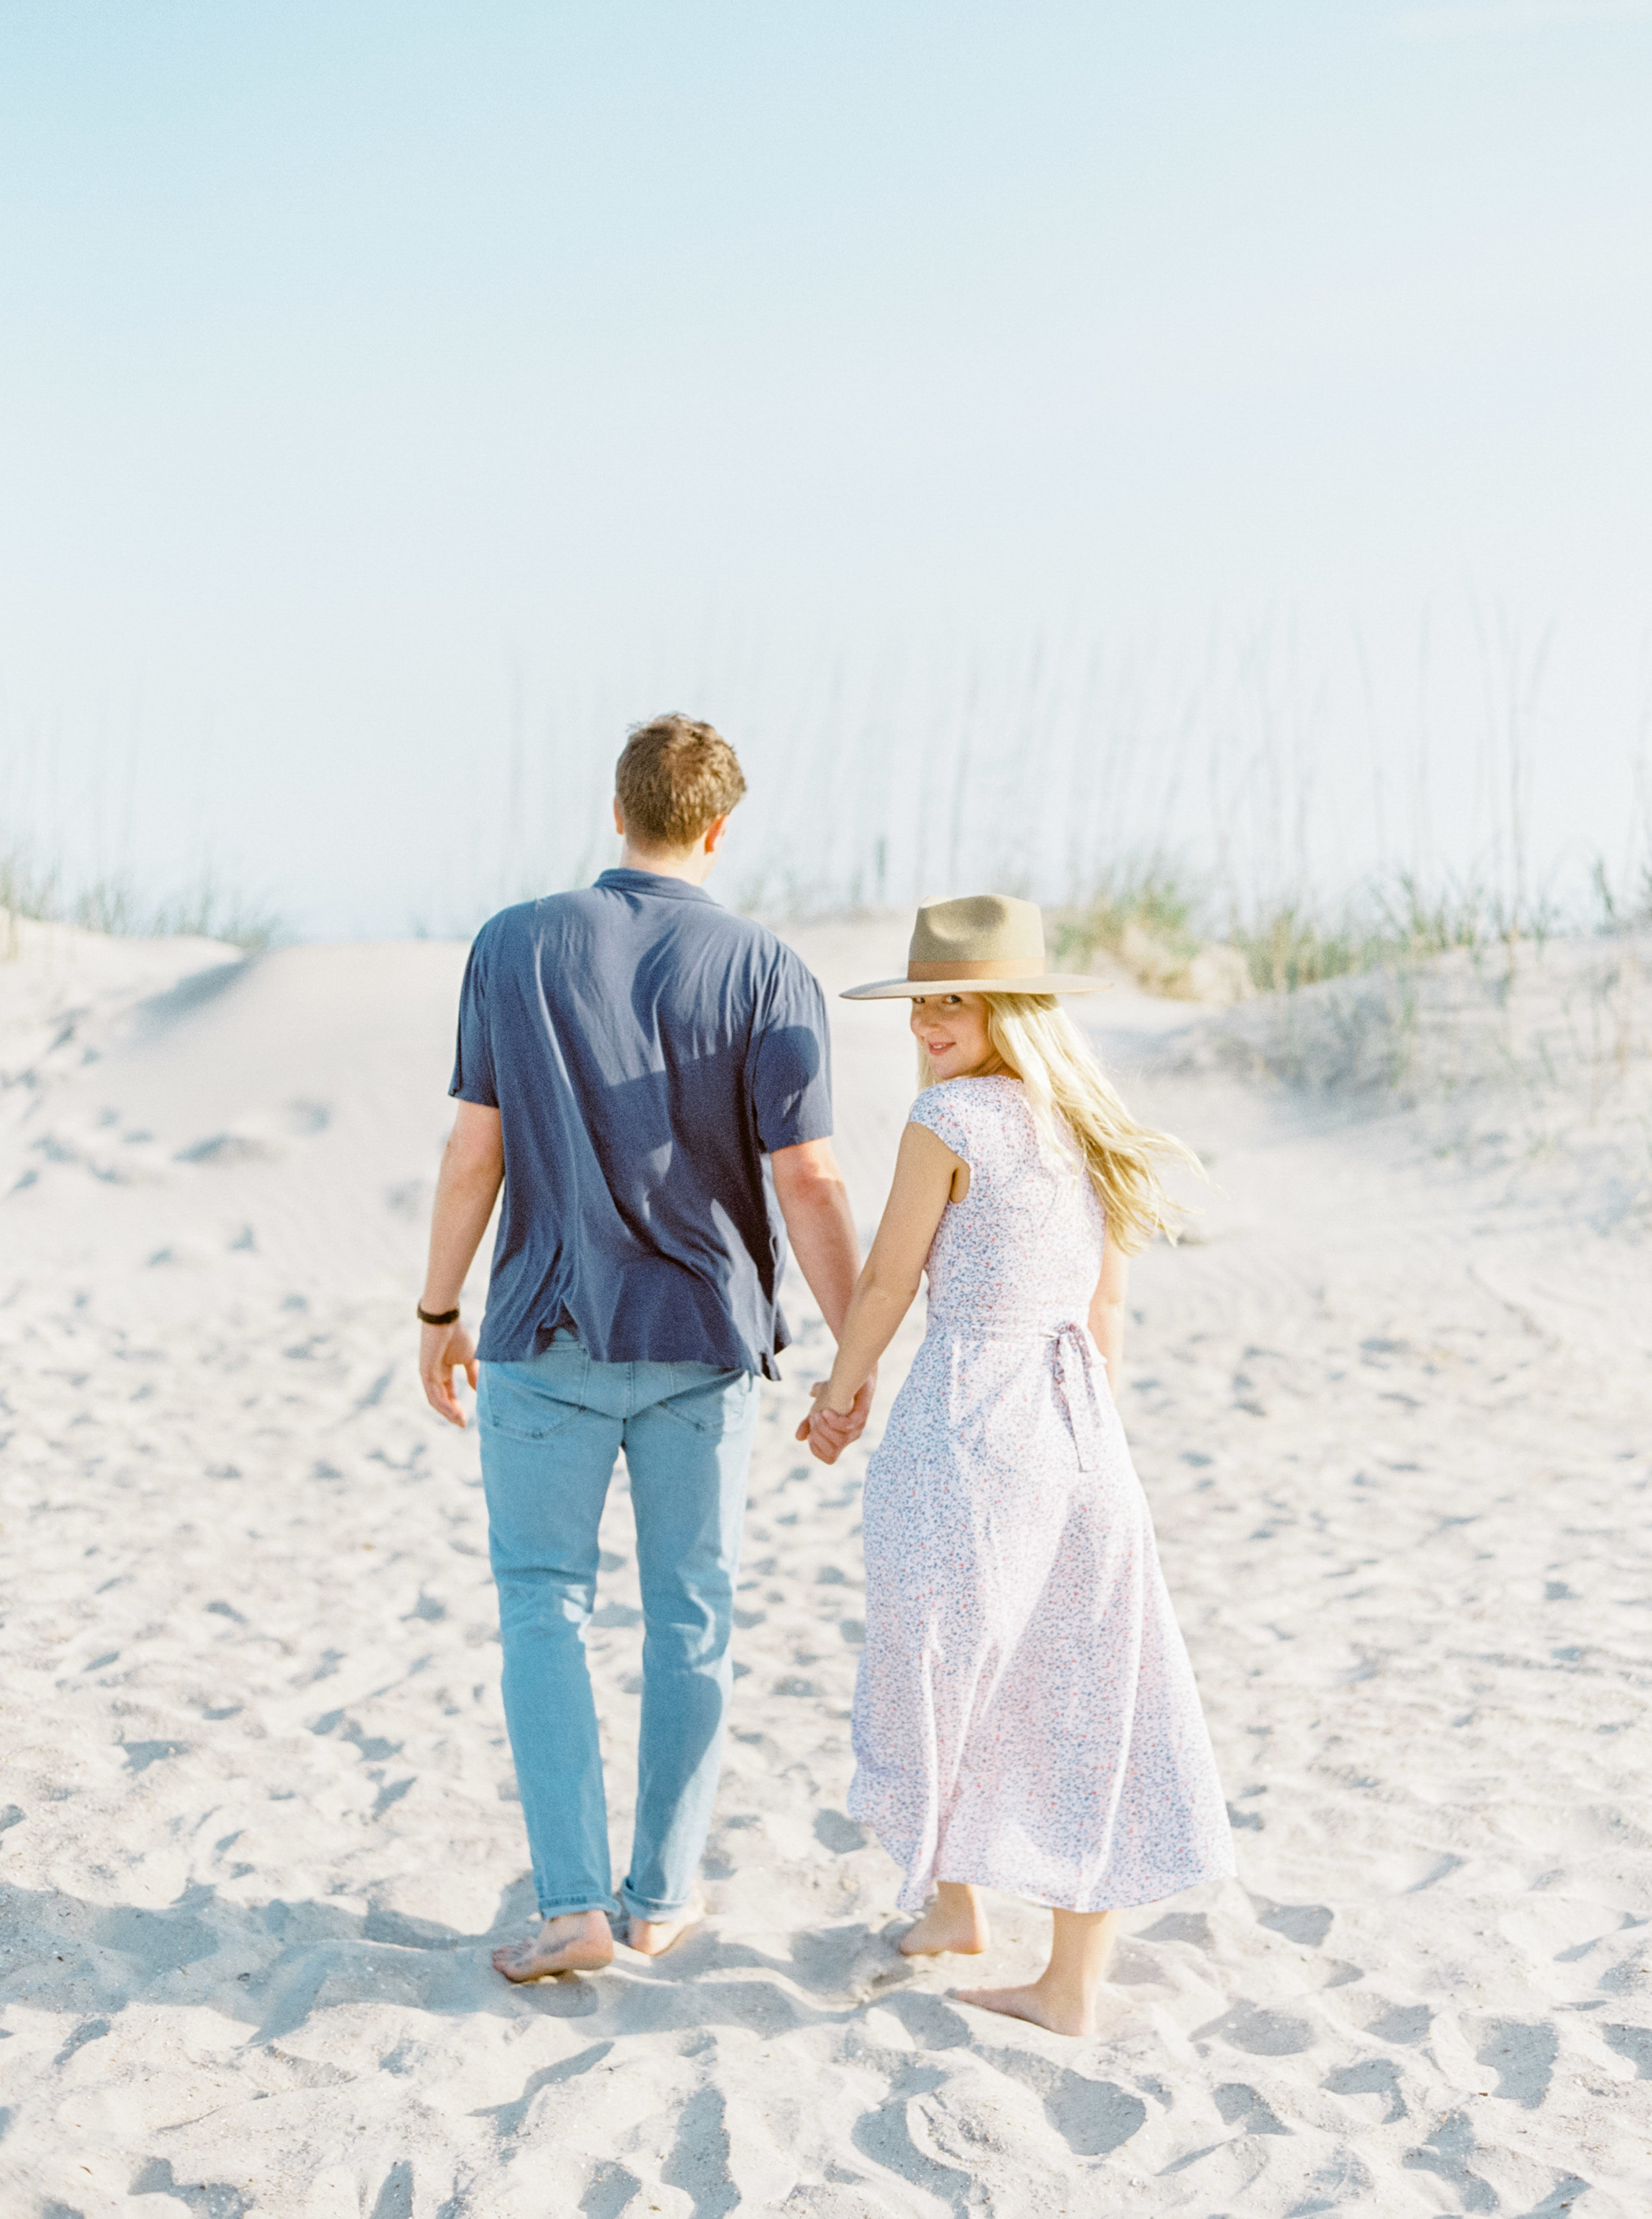 Allie + Miles | Engagement Session on Tybee Island, GA